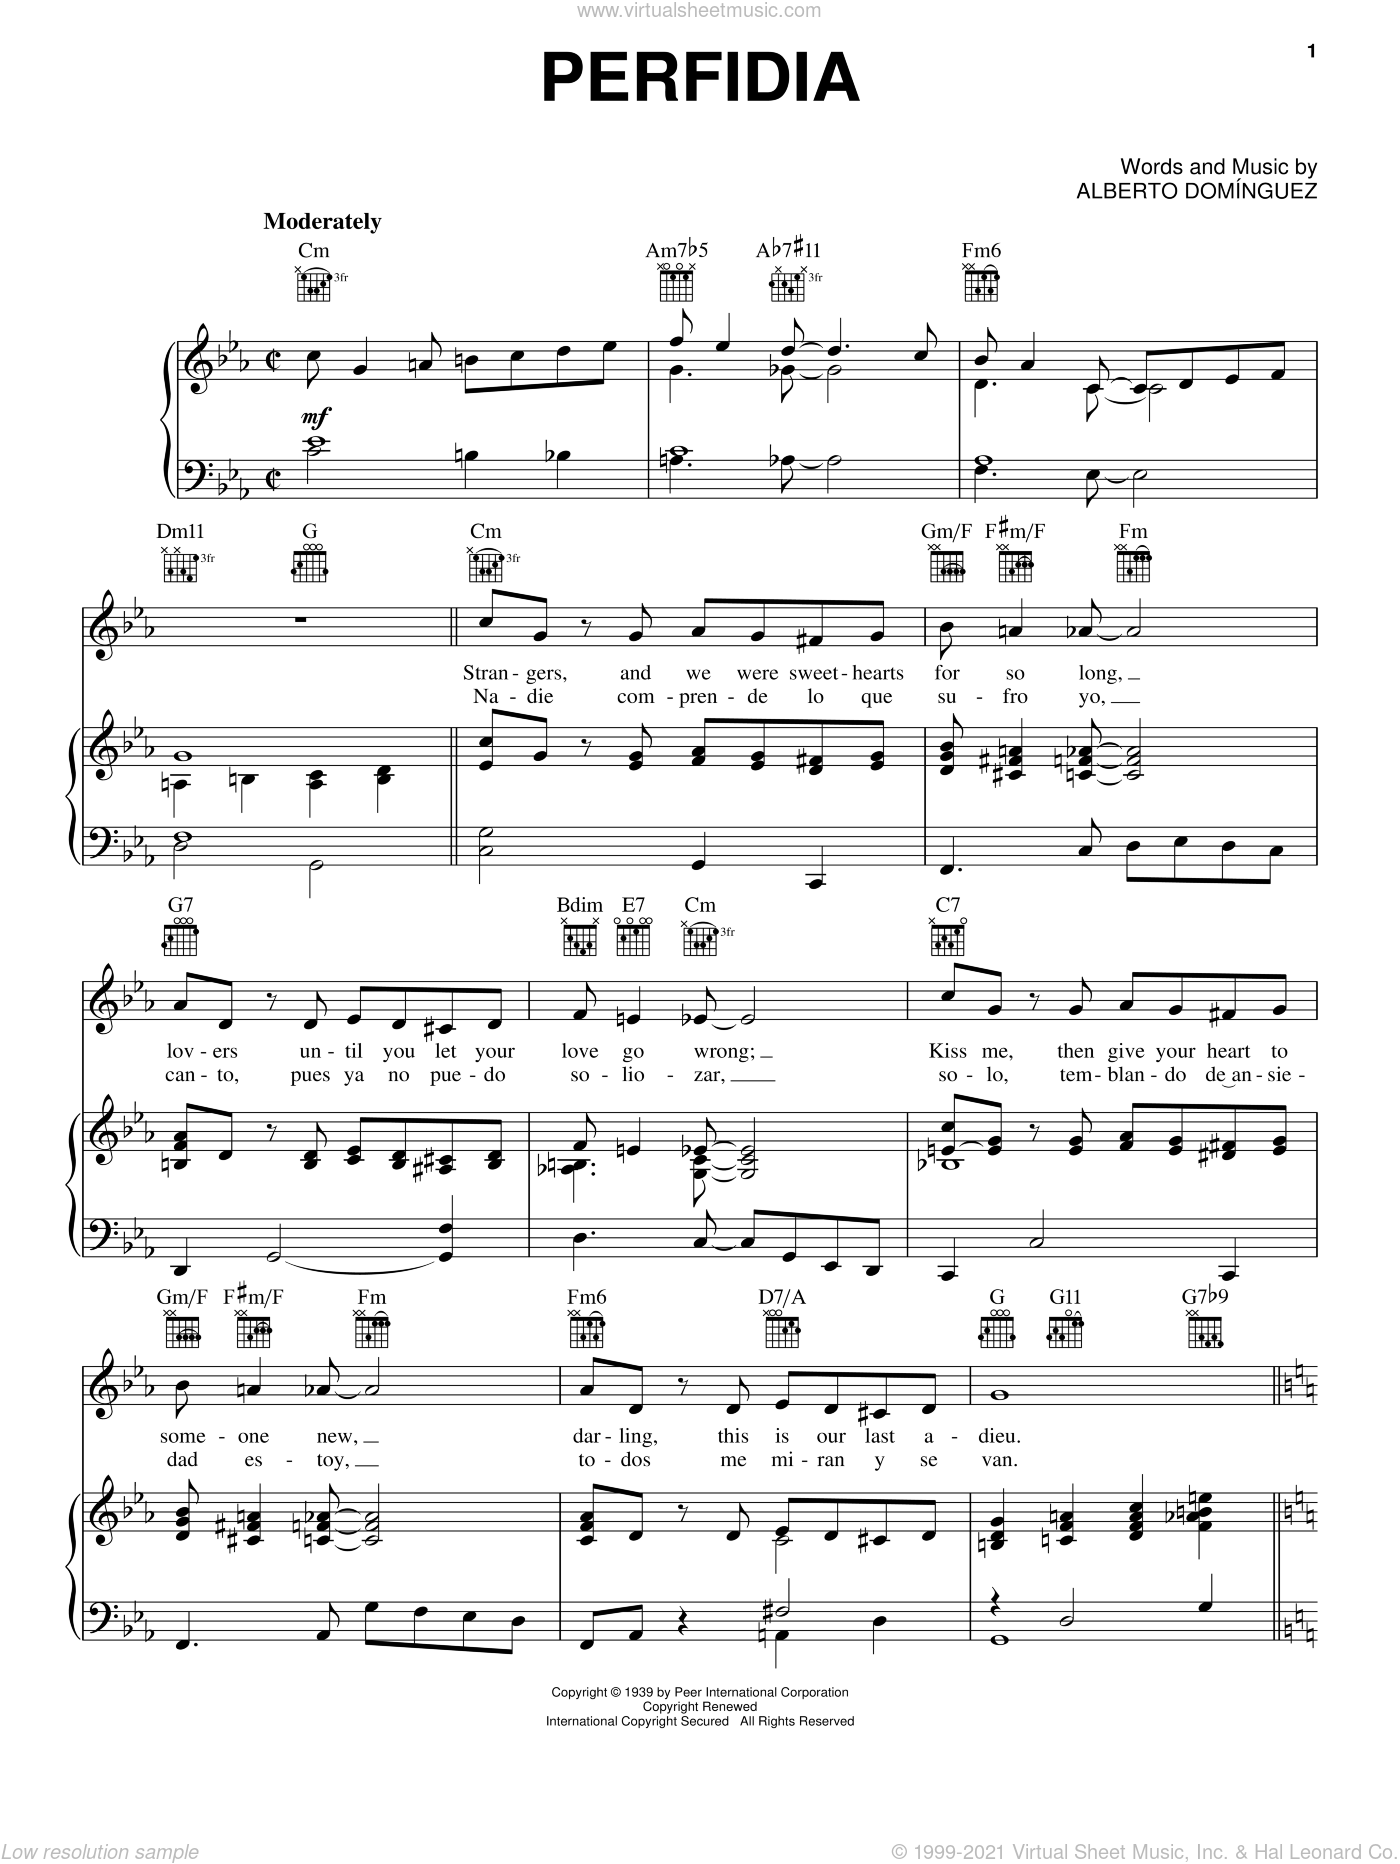 Dominguez - Perfidia sheet music for voice, piano or guitar [PDF]